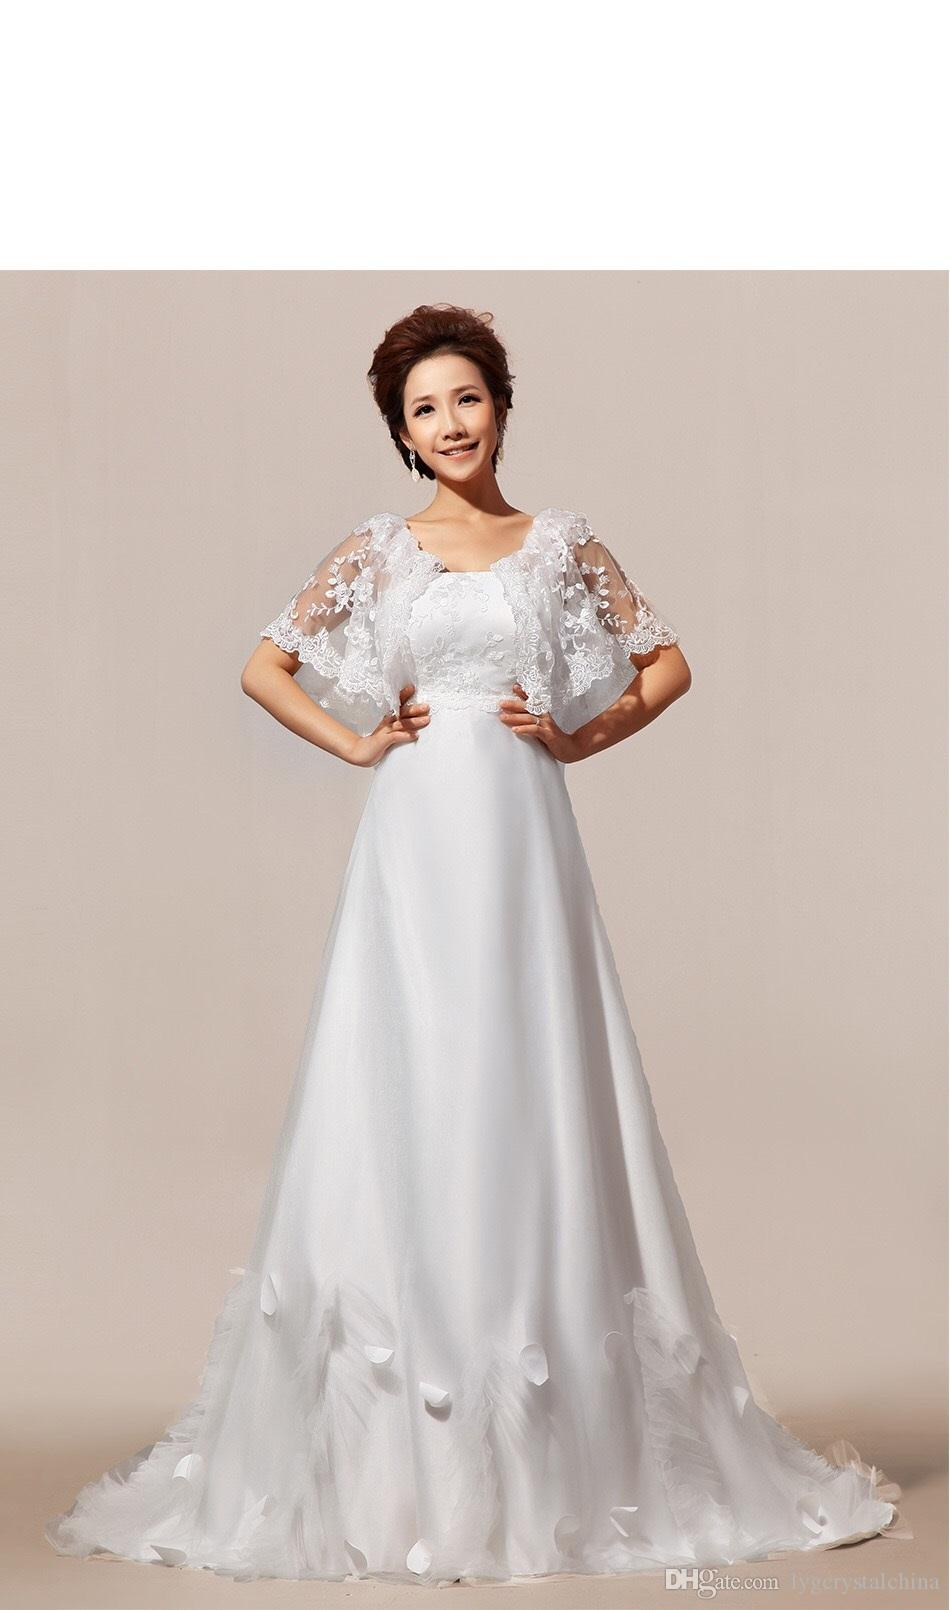 Best seller wedding dress flat shoulders tail wedding dress lace best seller wedding dress flat shoulders tail wedding dress lace workmaship maternity wedding dresses comfortable high ombrellifo Images